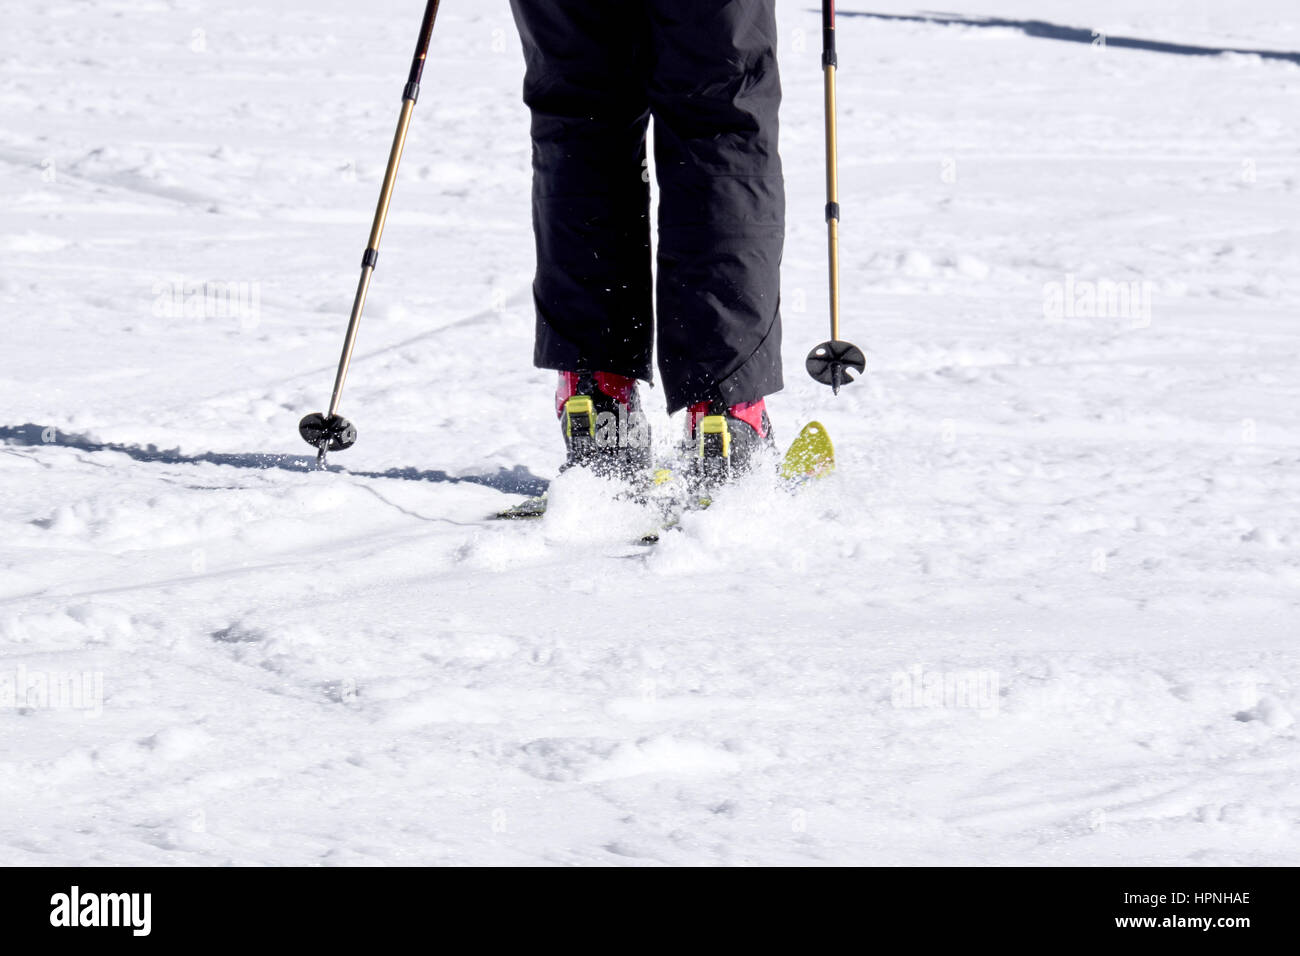 WINTERBERG, GERMANY - FEBRUARY 15, 2017: The legs of a downhill skier with perfect parallel style at Ski Carousel - Stock Image